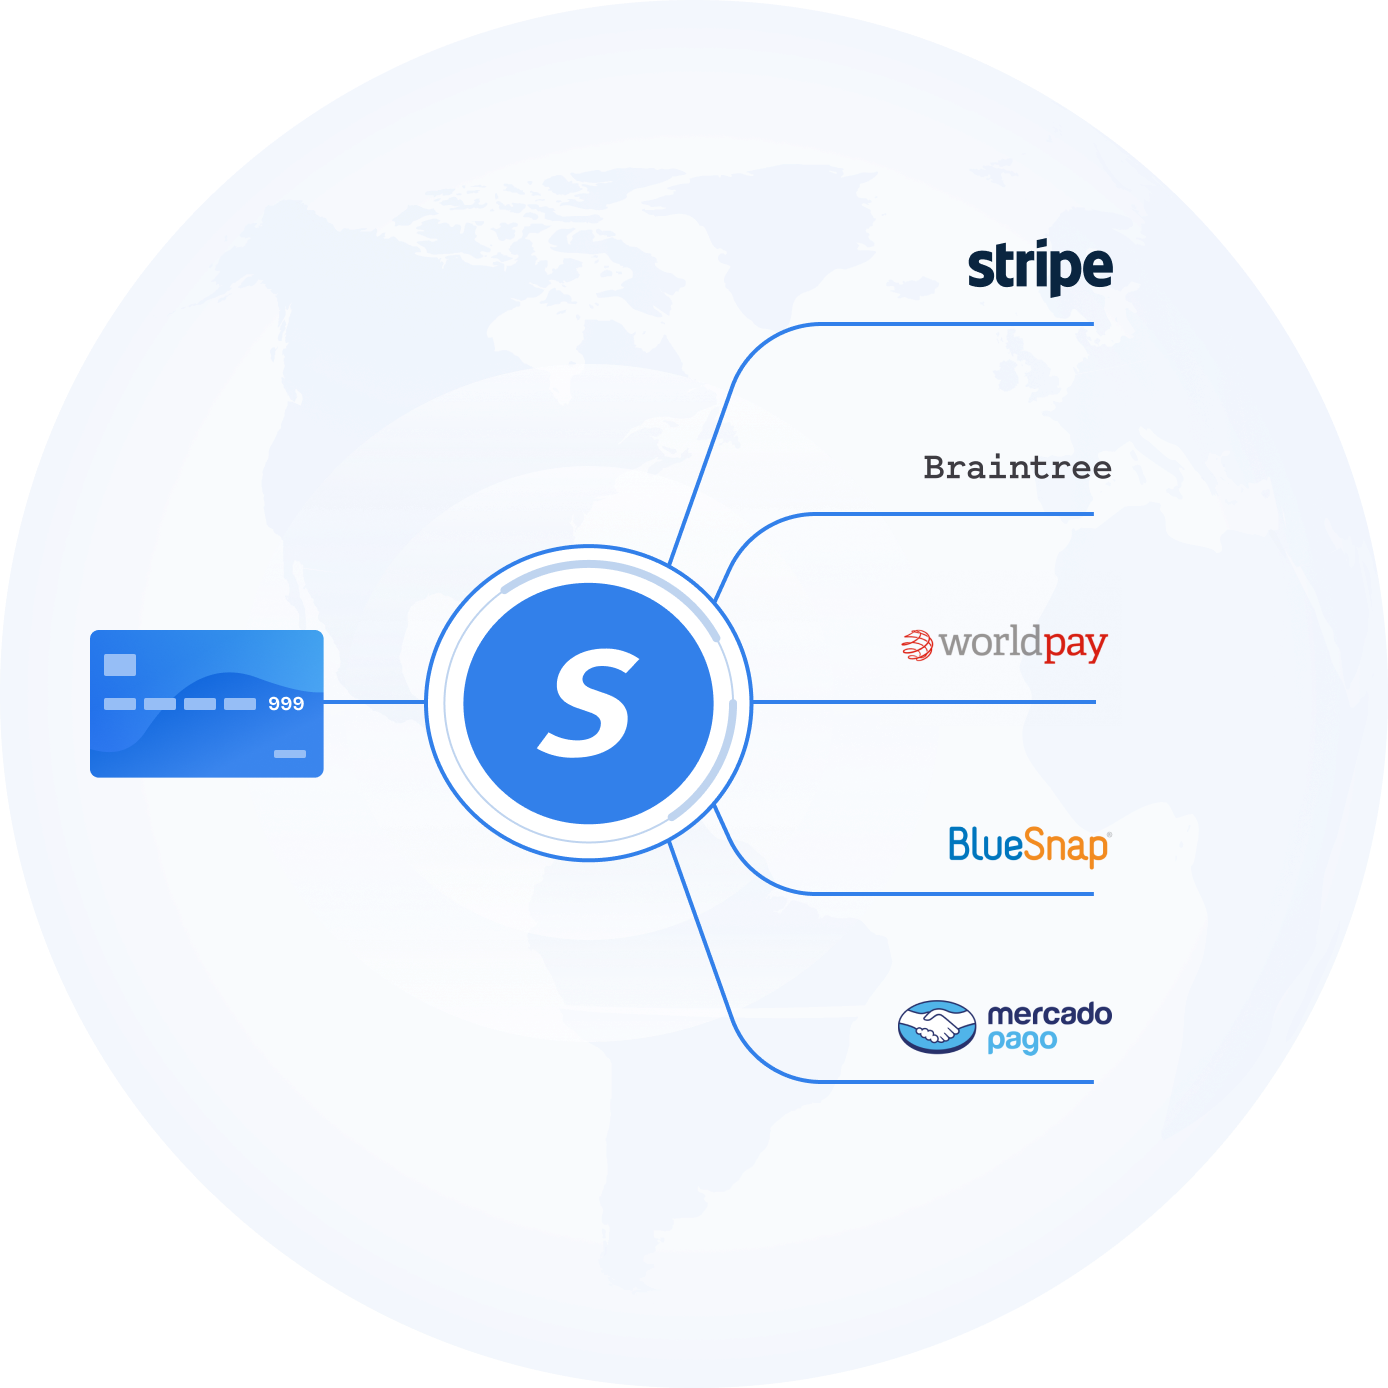 an credit card on the left is connected to the spreedly logo. that logo is connected to several other businesses like stripe, braintree, worldpay, and bluesnap.